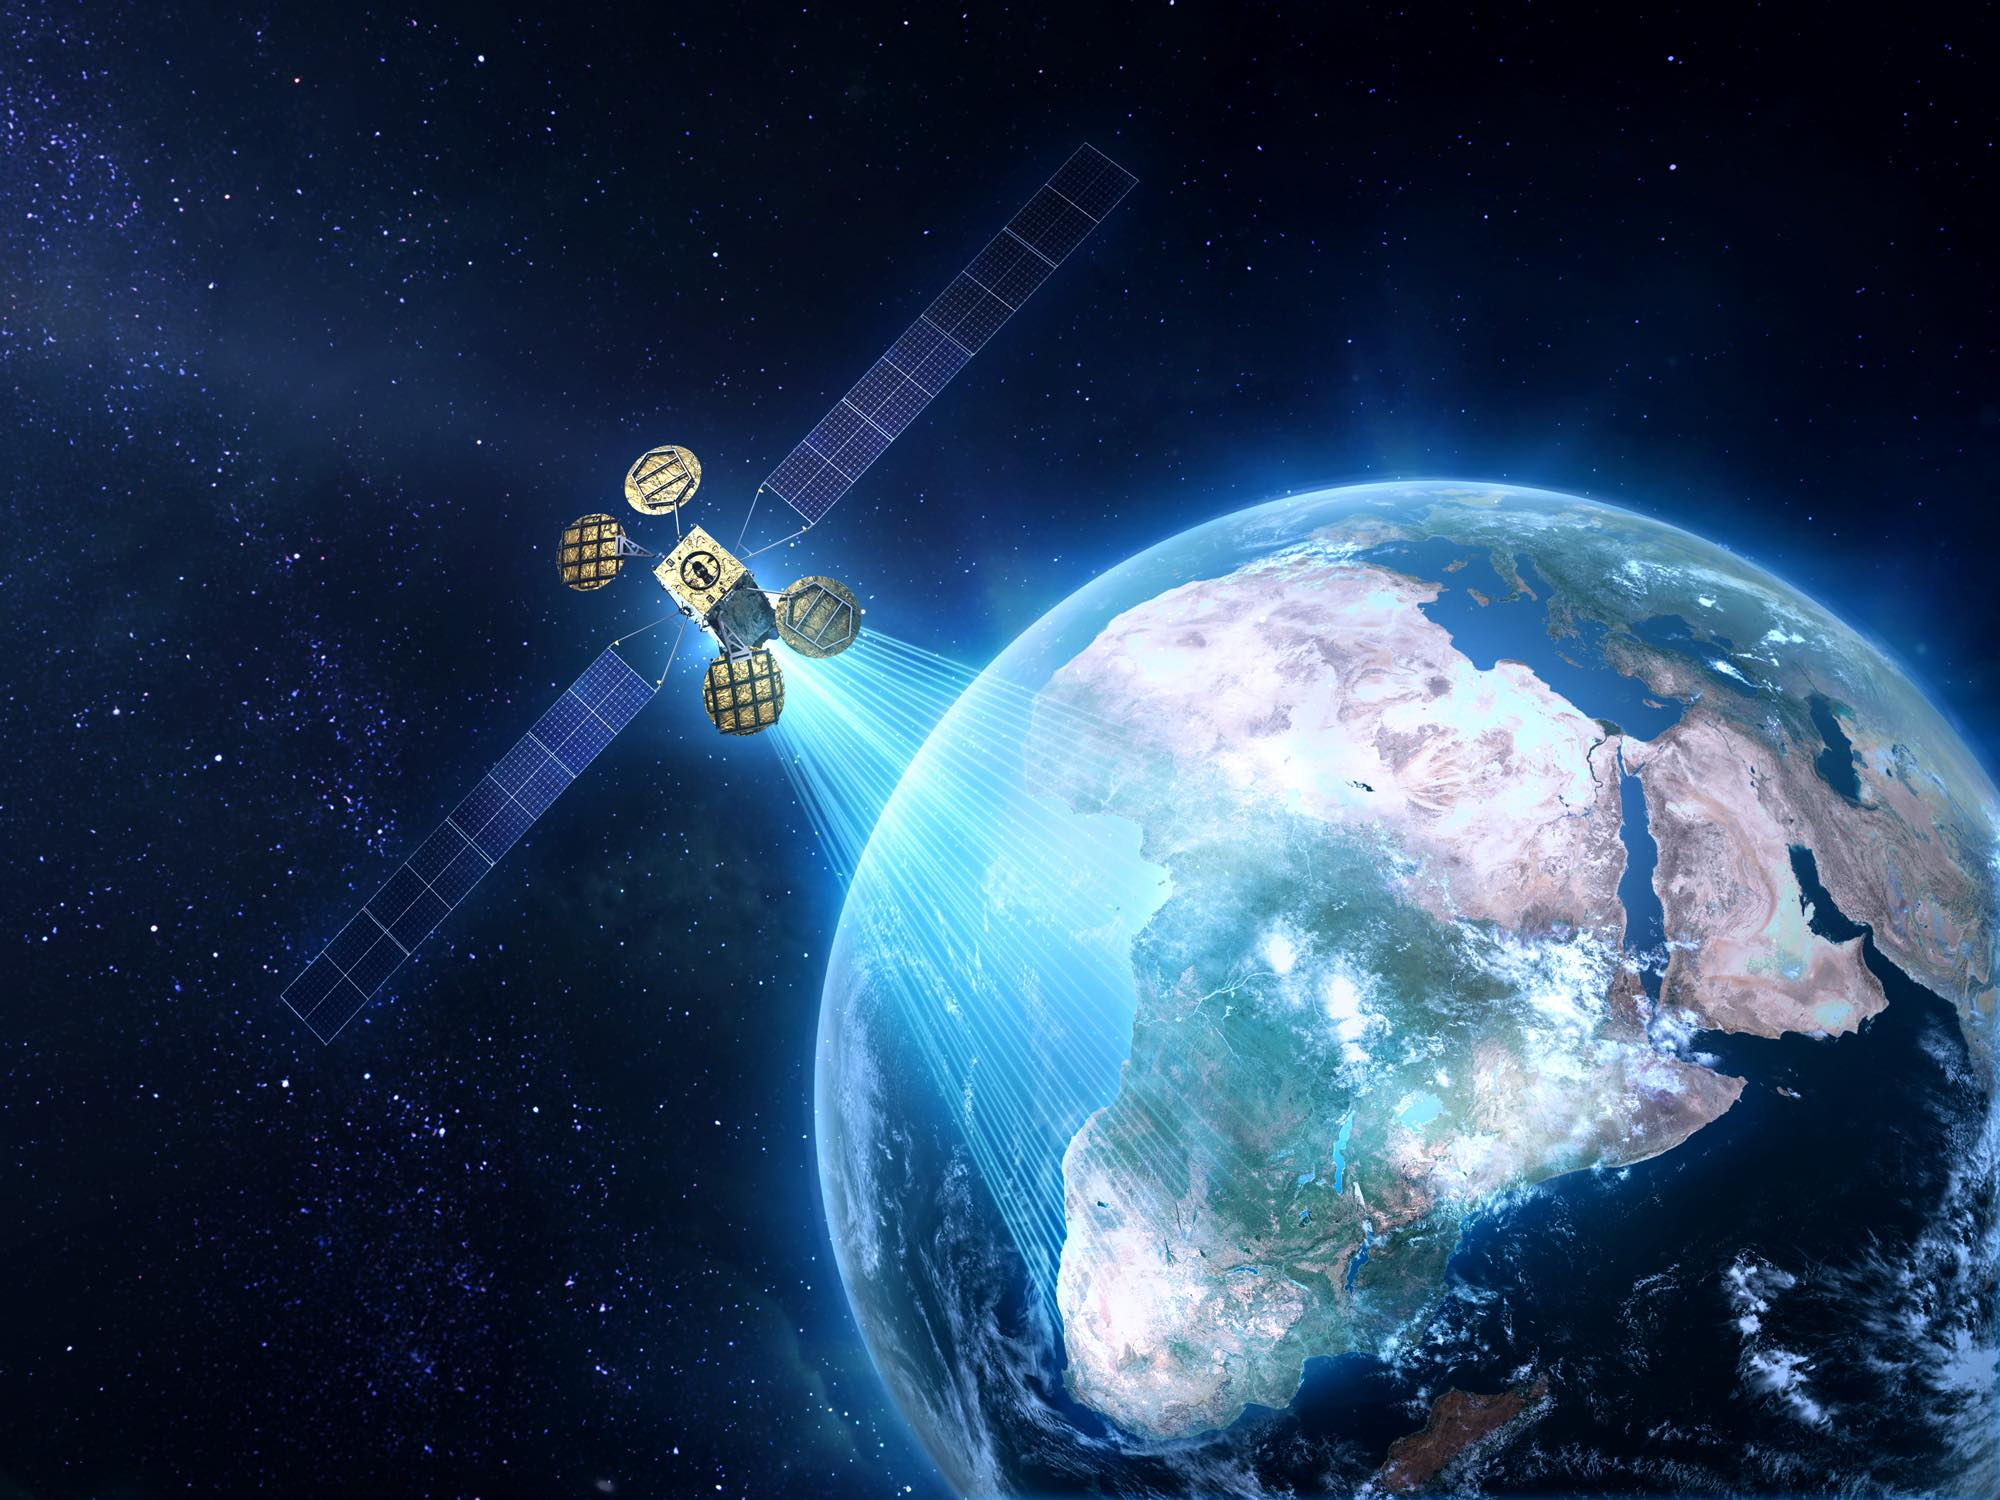 Facebook confirms it's taking on SpaceX with its own 'Athena' internet satellite